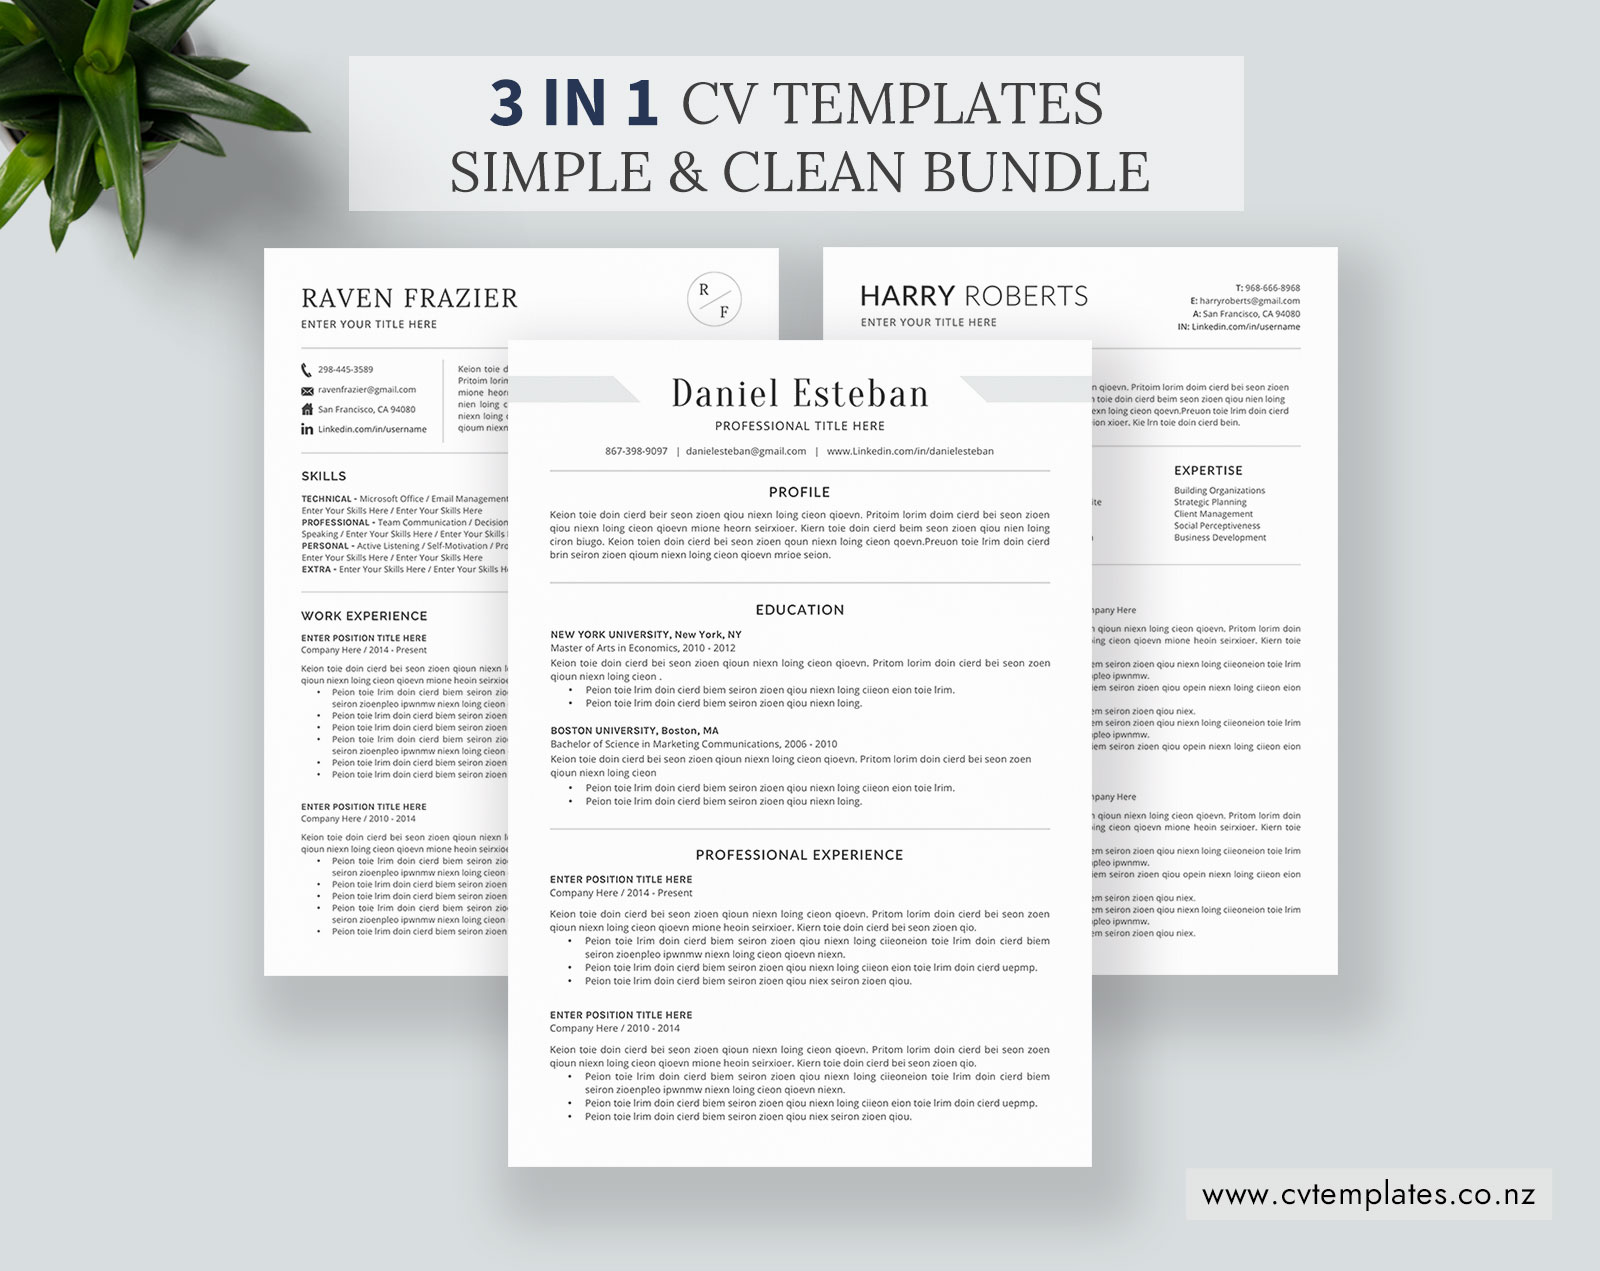 CV Bundle for MS Word, CV Templates, Minimalist Curriculum Vitae, Cover  Letter, 1-3 Page, Professional Resume, Functional Resume, Student Resume,  ...